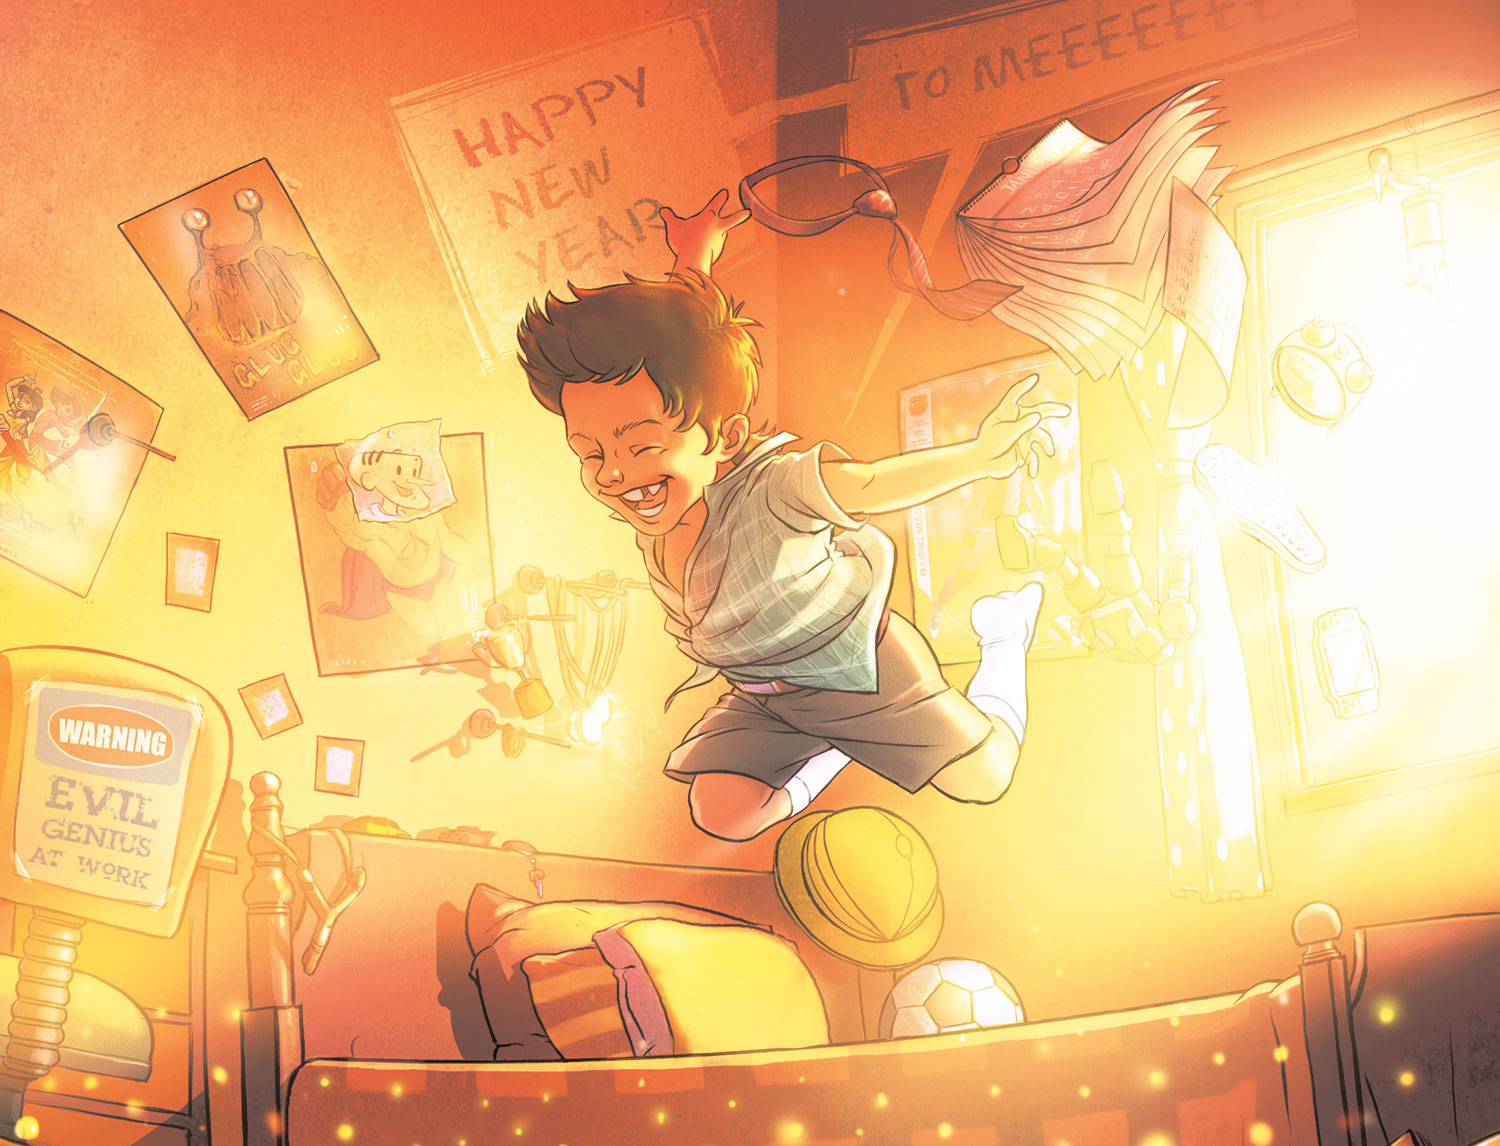 Child jumping for joy in his sunlit bedroom, with 'Happy New Year to Meeeee' speech bubble